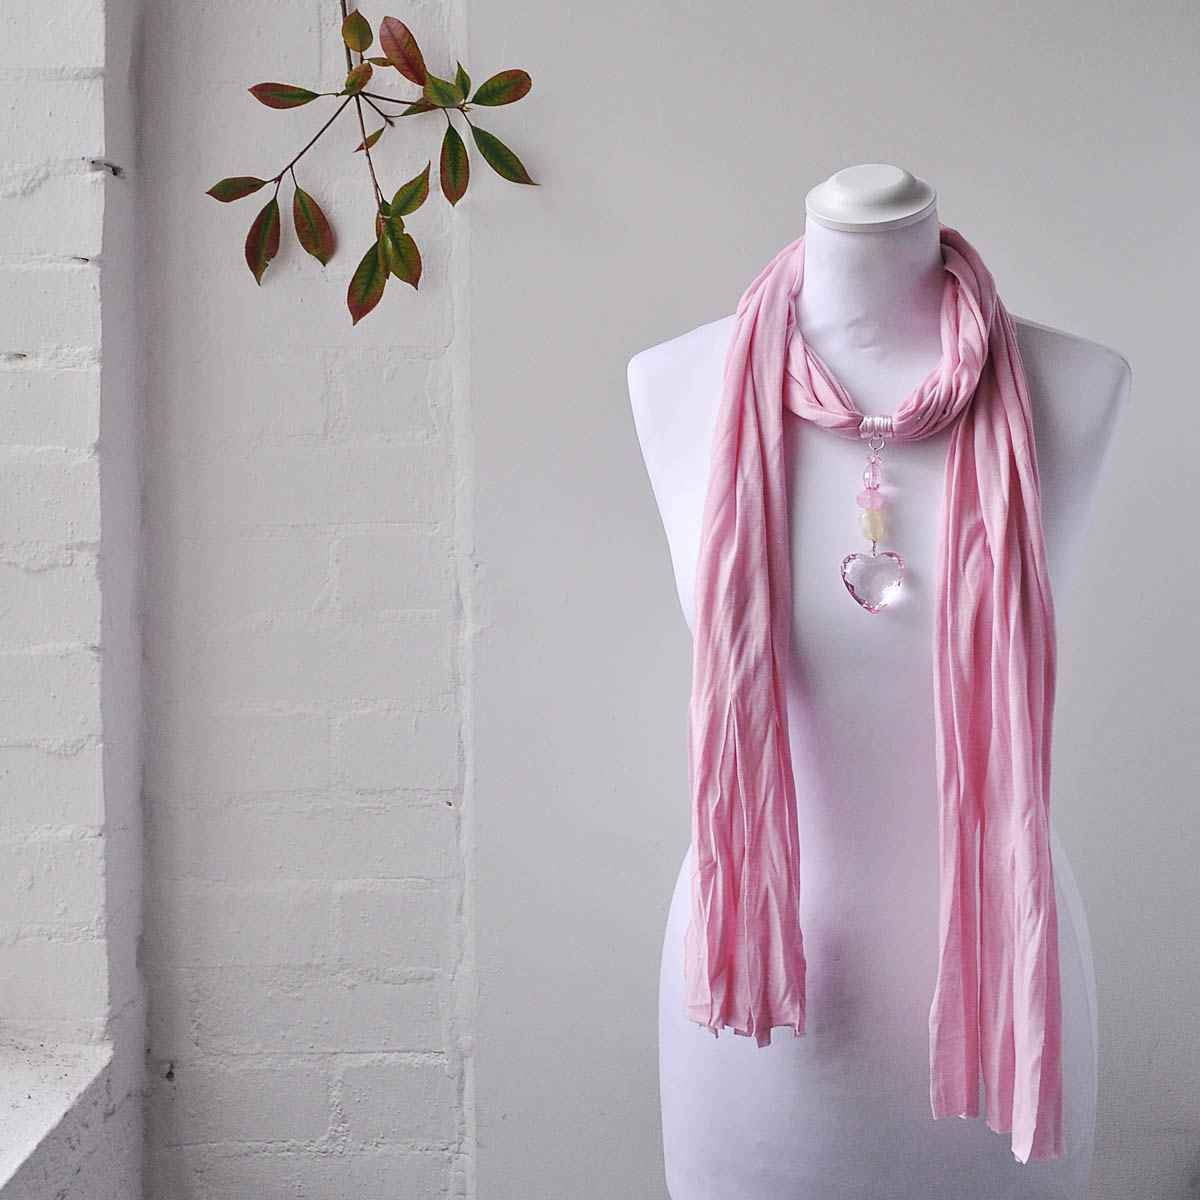 Ladies Pendant Jewellery Heart Necklace Scarf Made of Soft Jersey